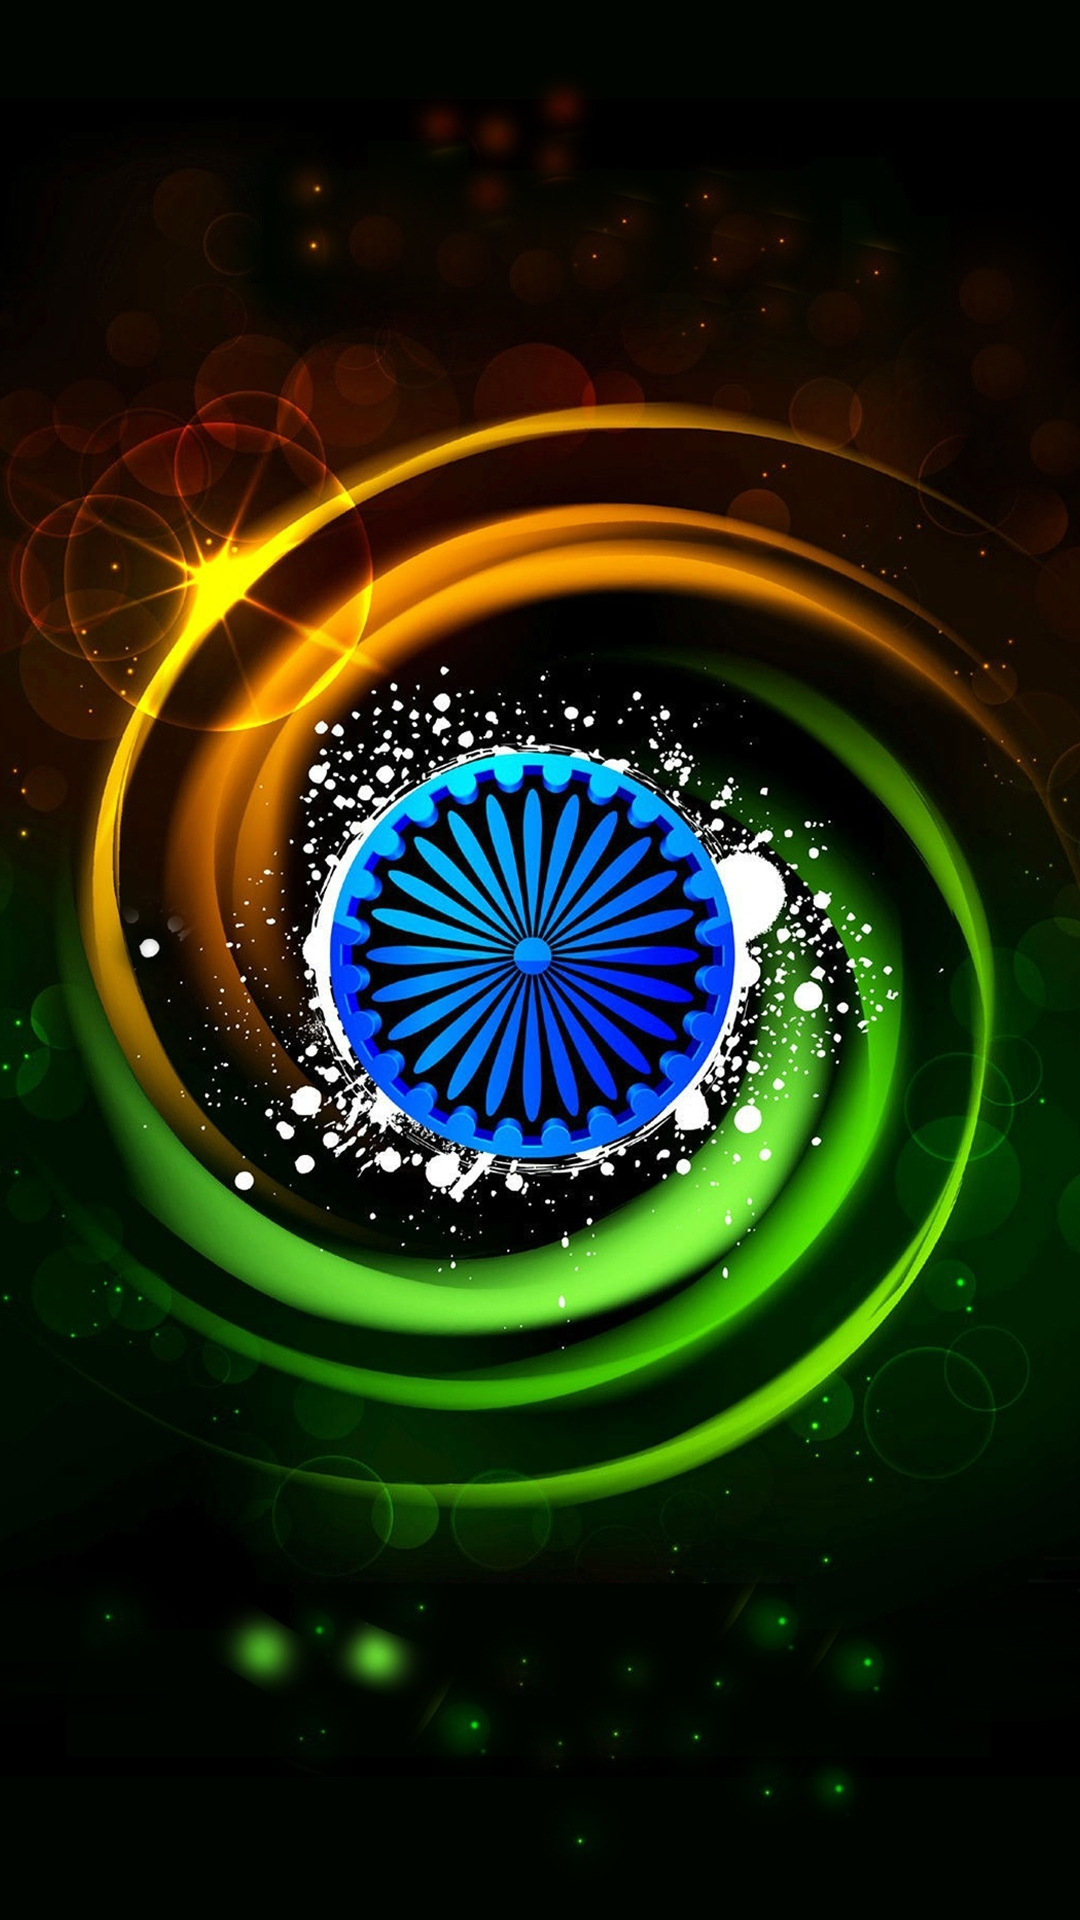 india flag for mobile phone wallpaper 08 of 17 – tiranga in 3d | hd